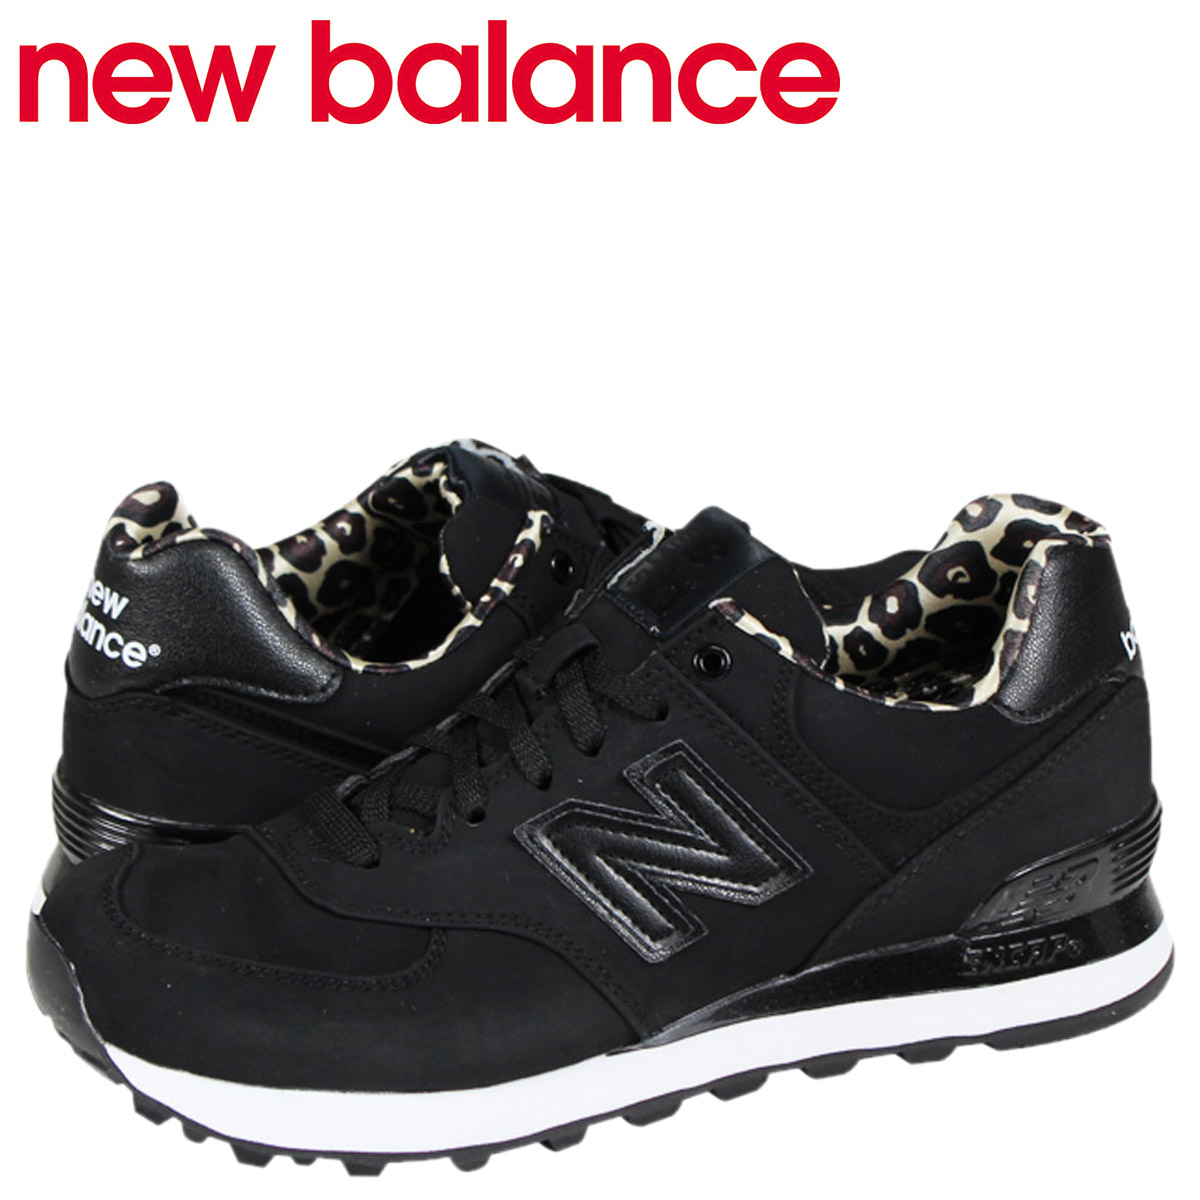 womens new balance 574 high roller athletic shoe nz